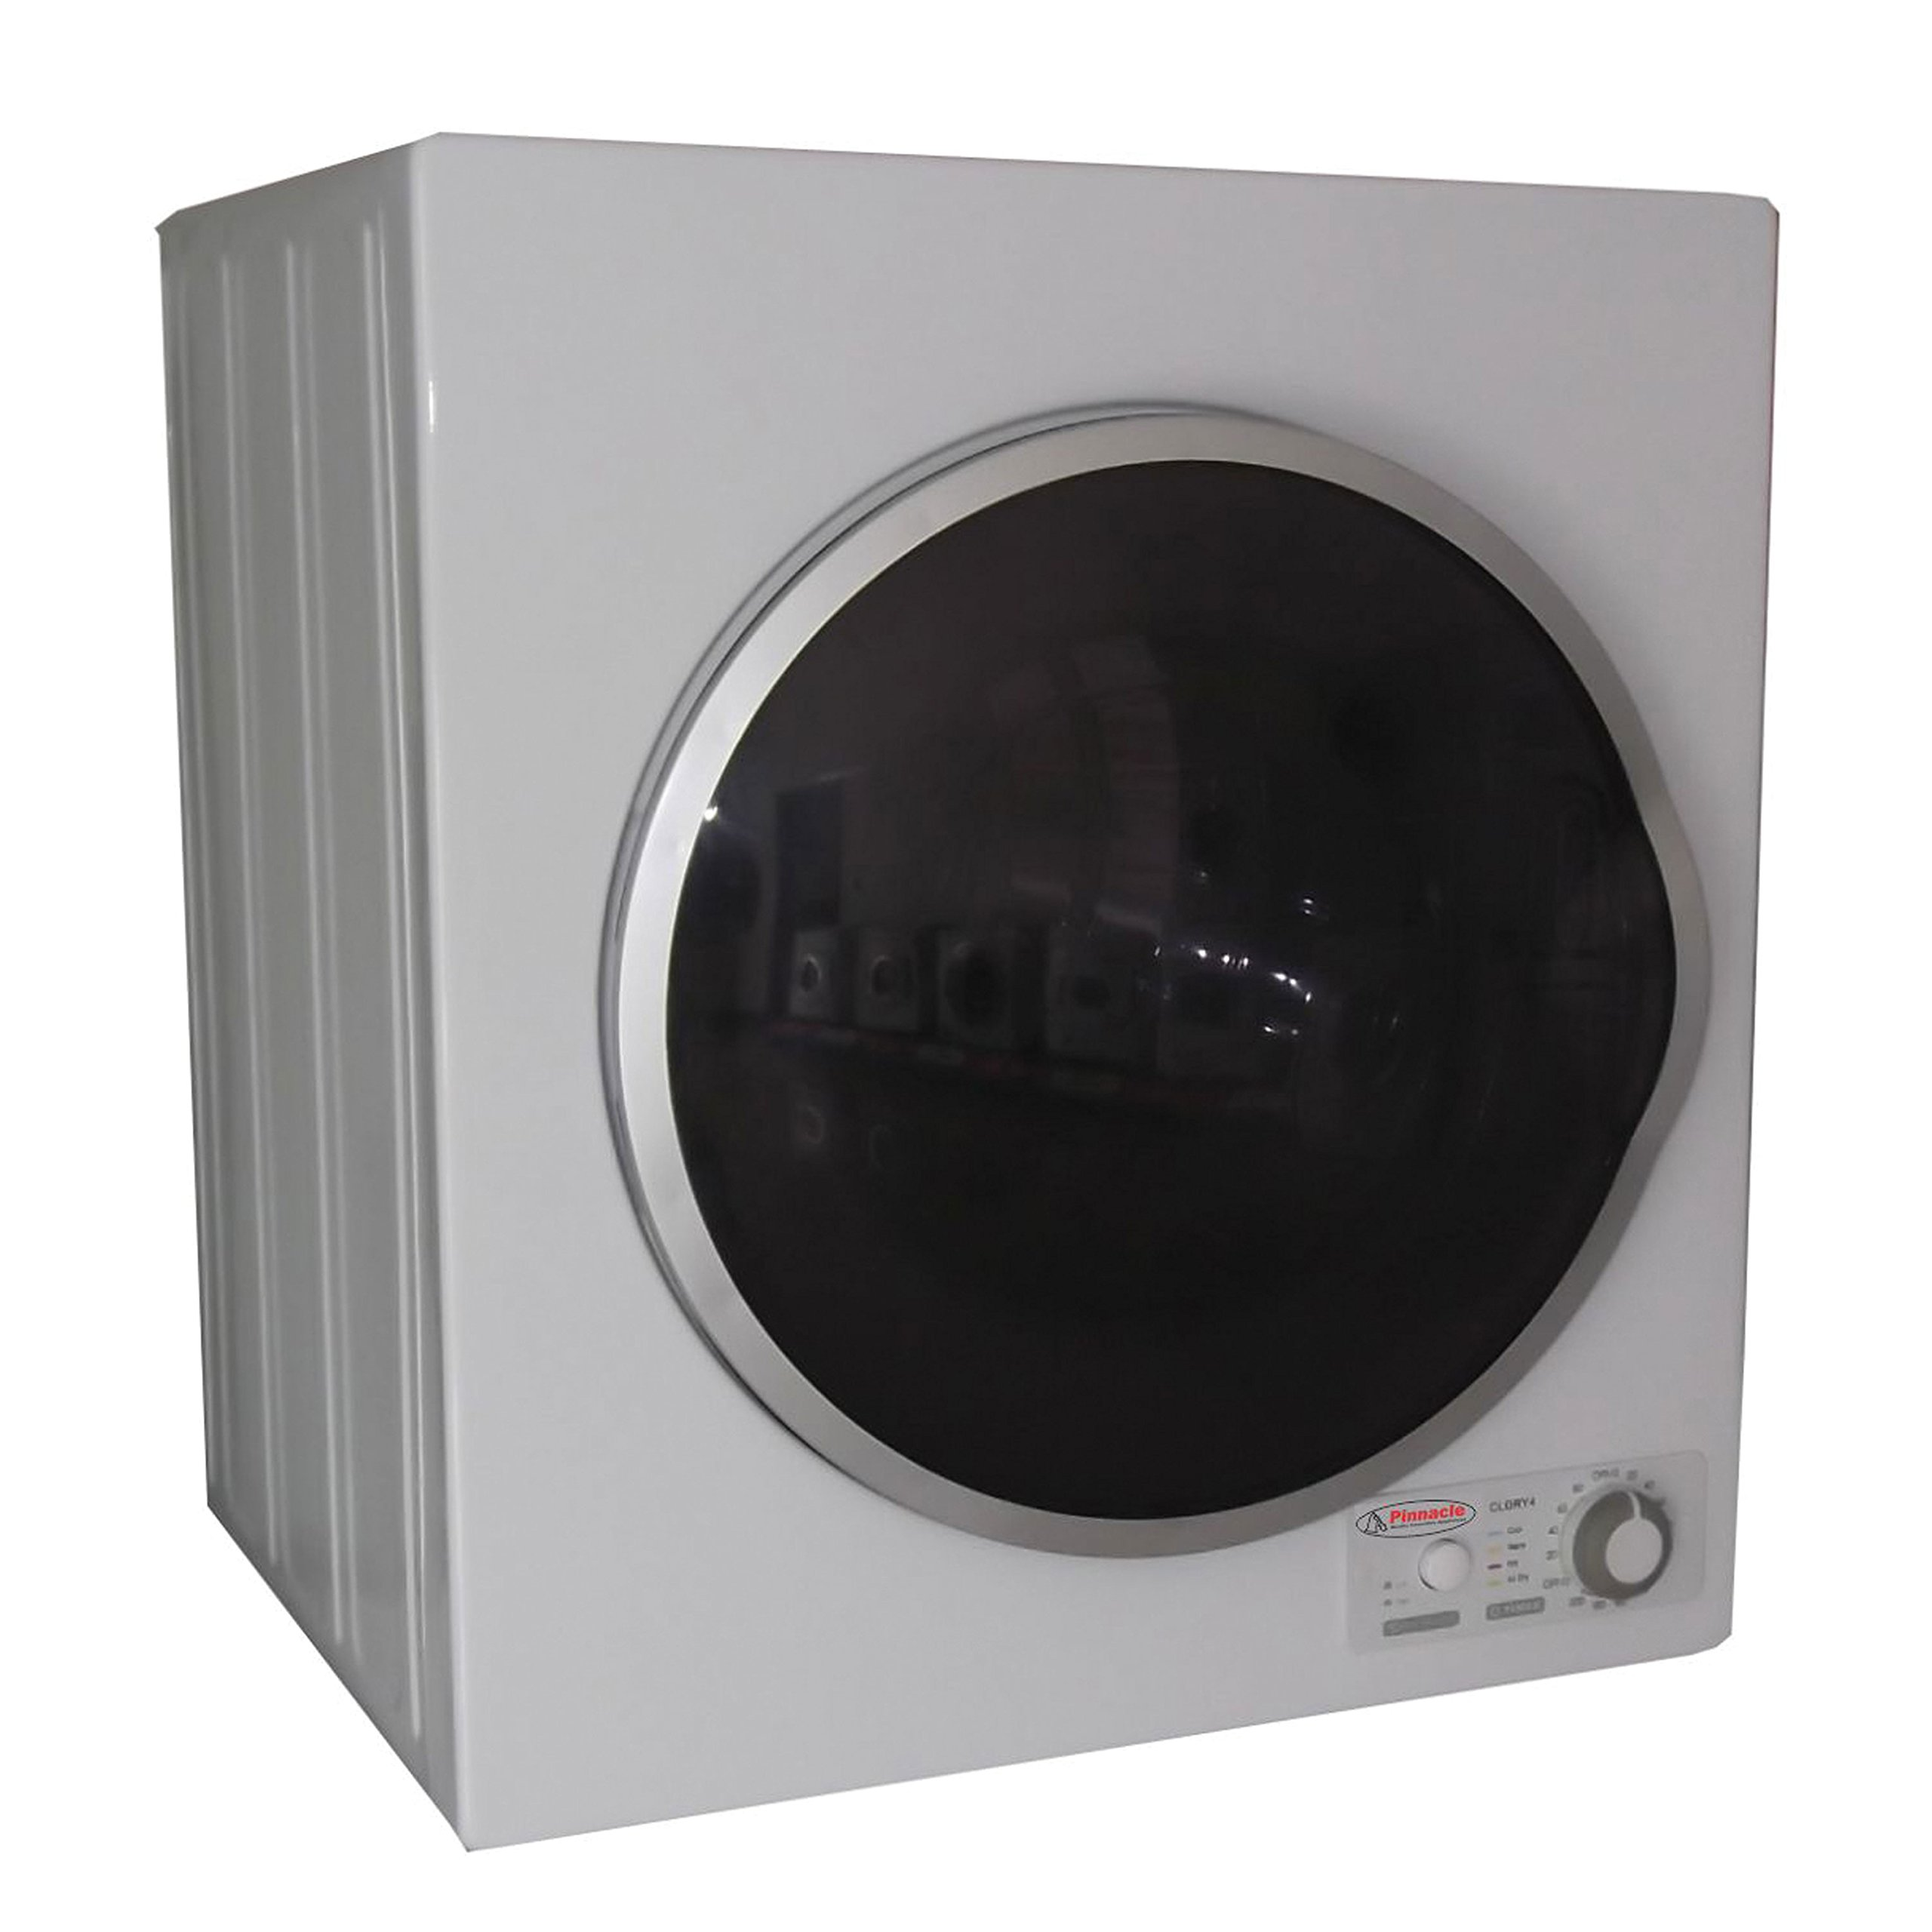 Triton TD850 Compact Dryer with Silver Trim, White